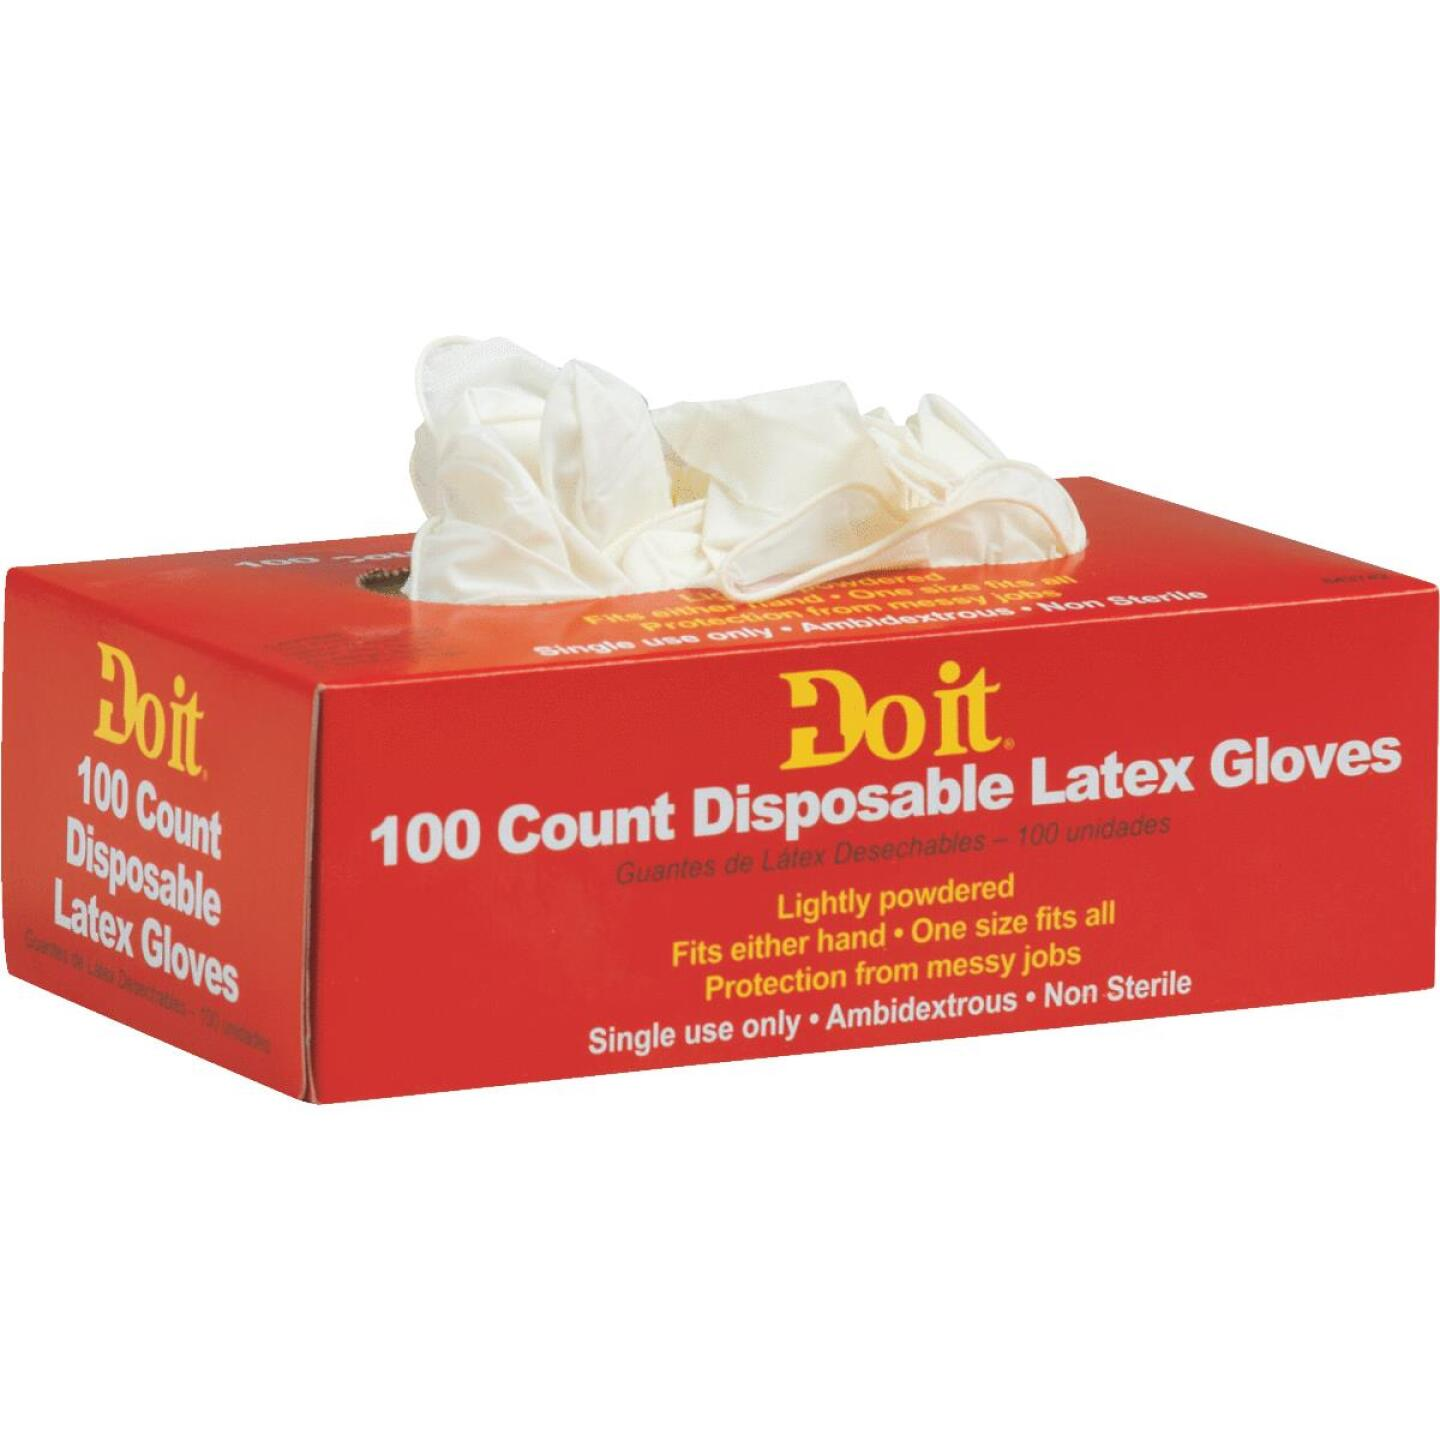 Do it 1 Size Fits All 1-Use Latex Disposable Glove (100-Pack) Image 1